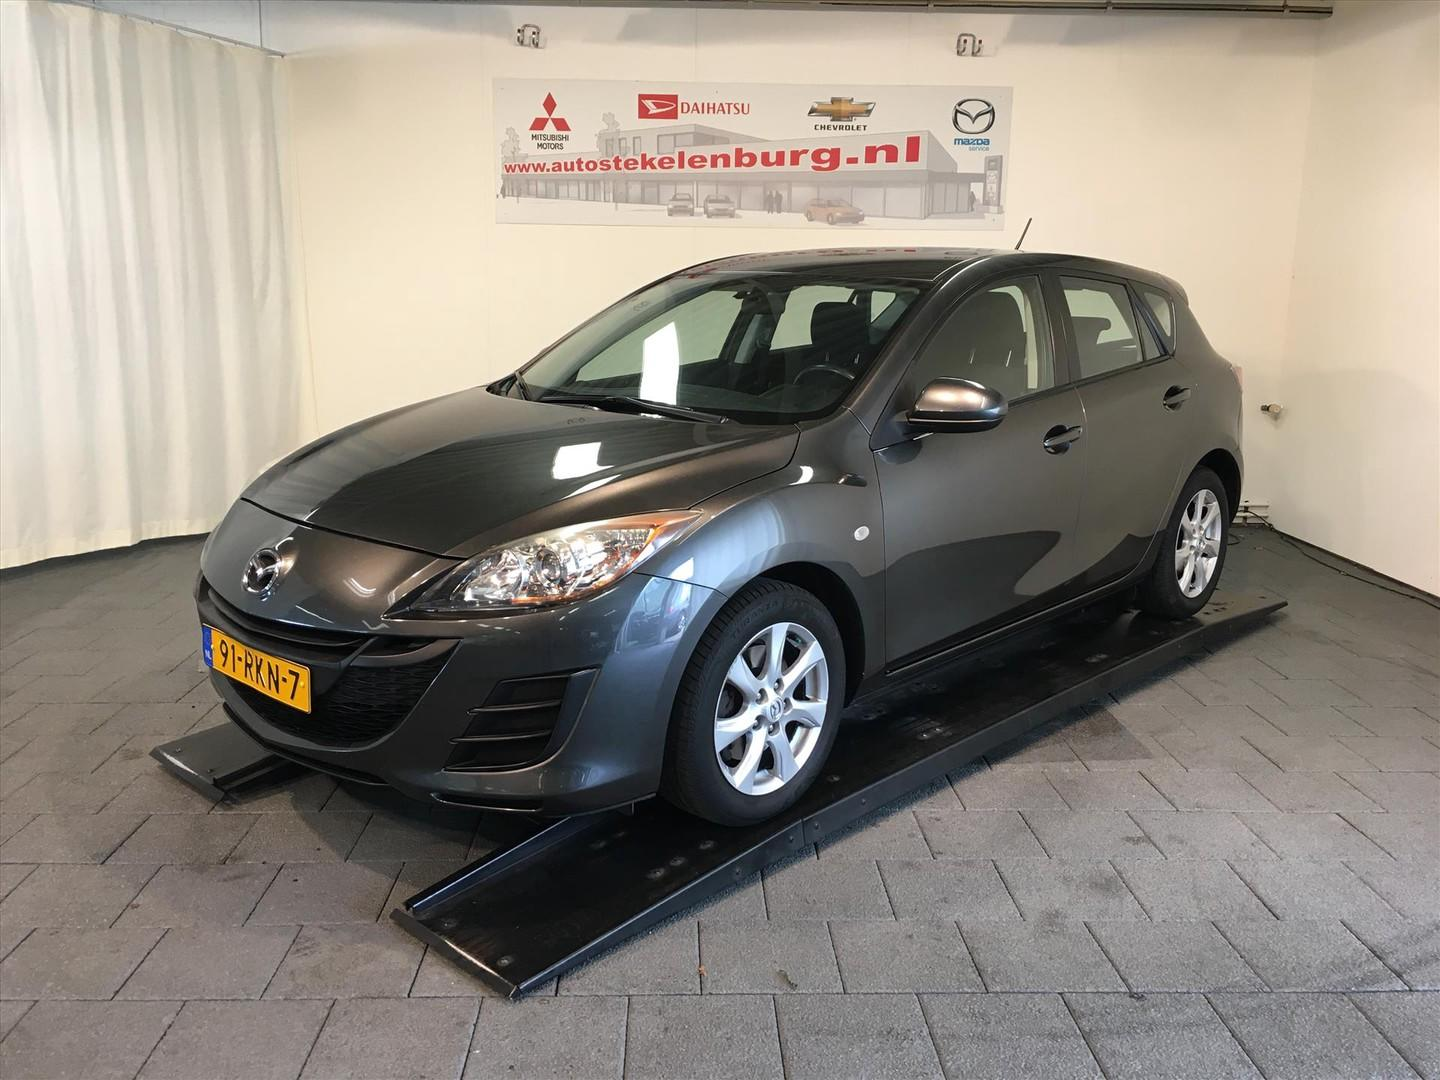 Mazda 3 2.0 150pk aut. limited at